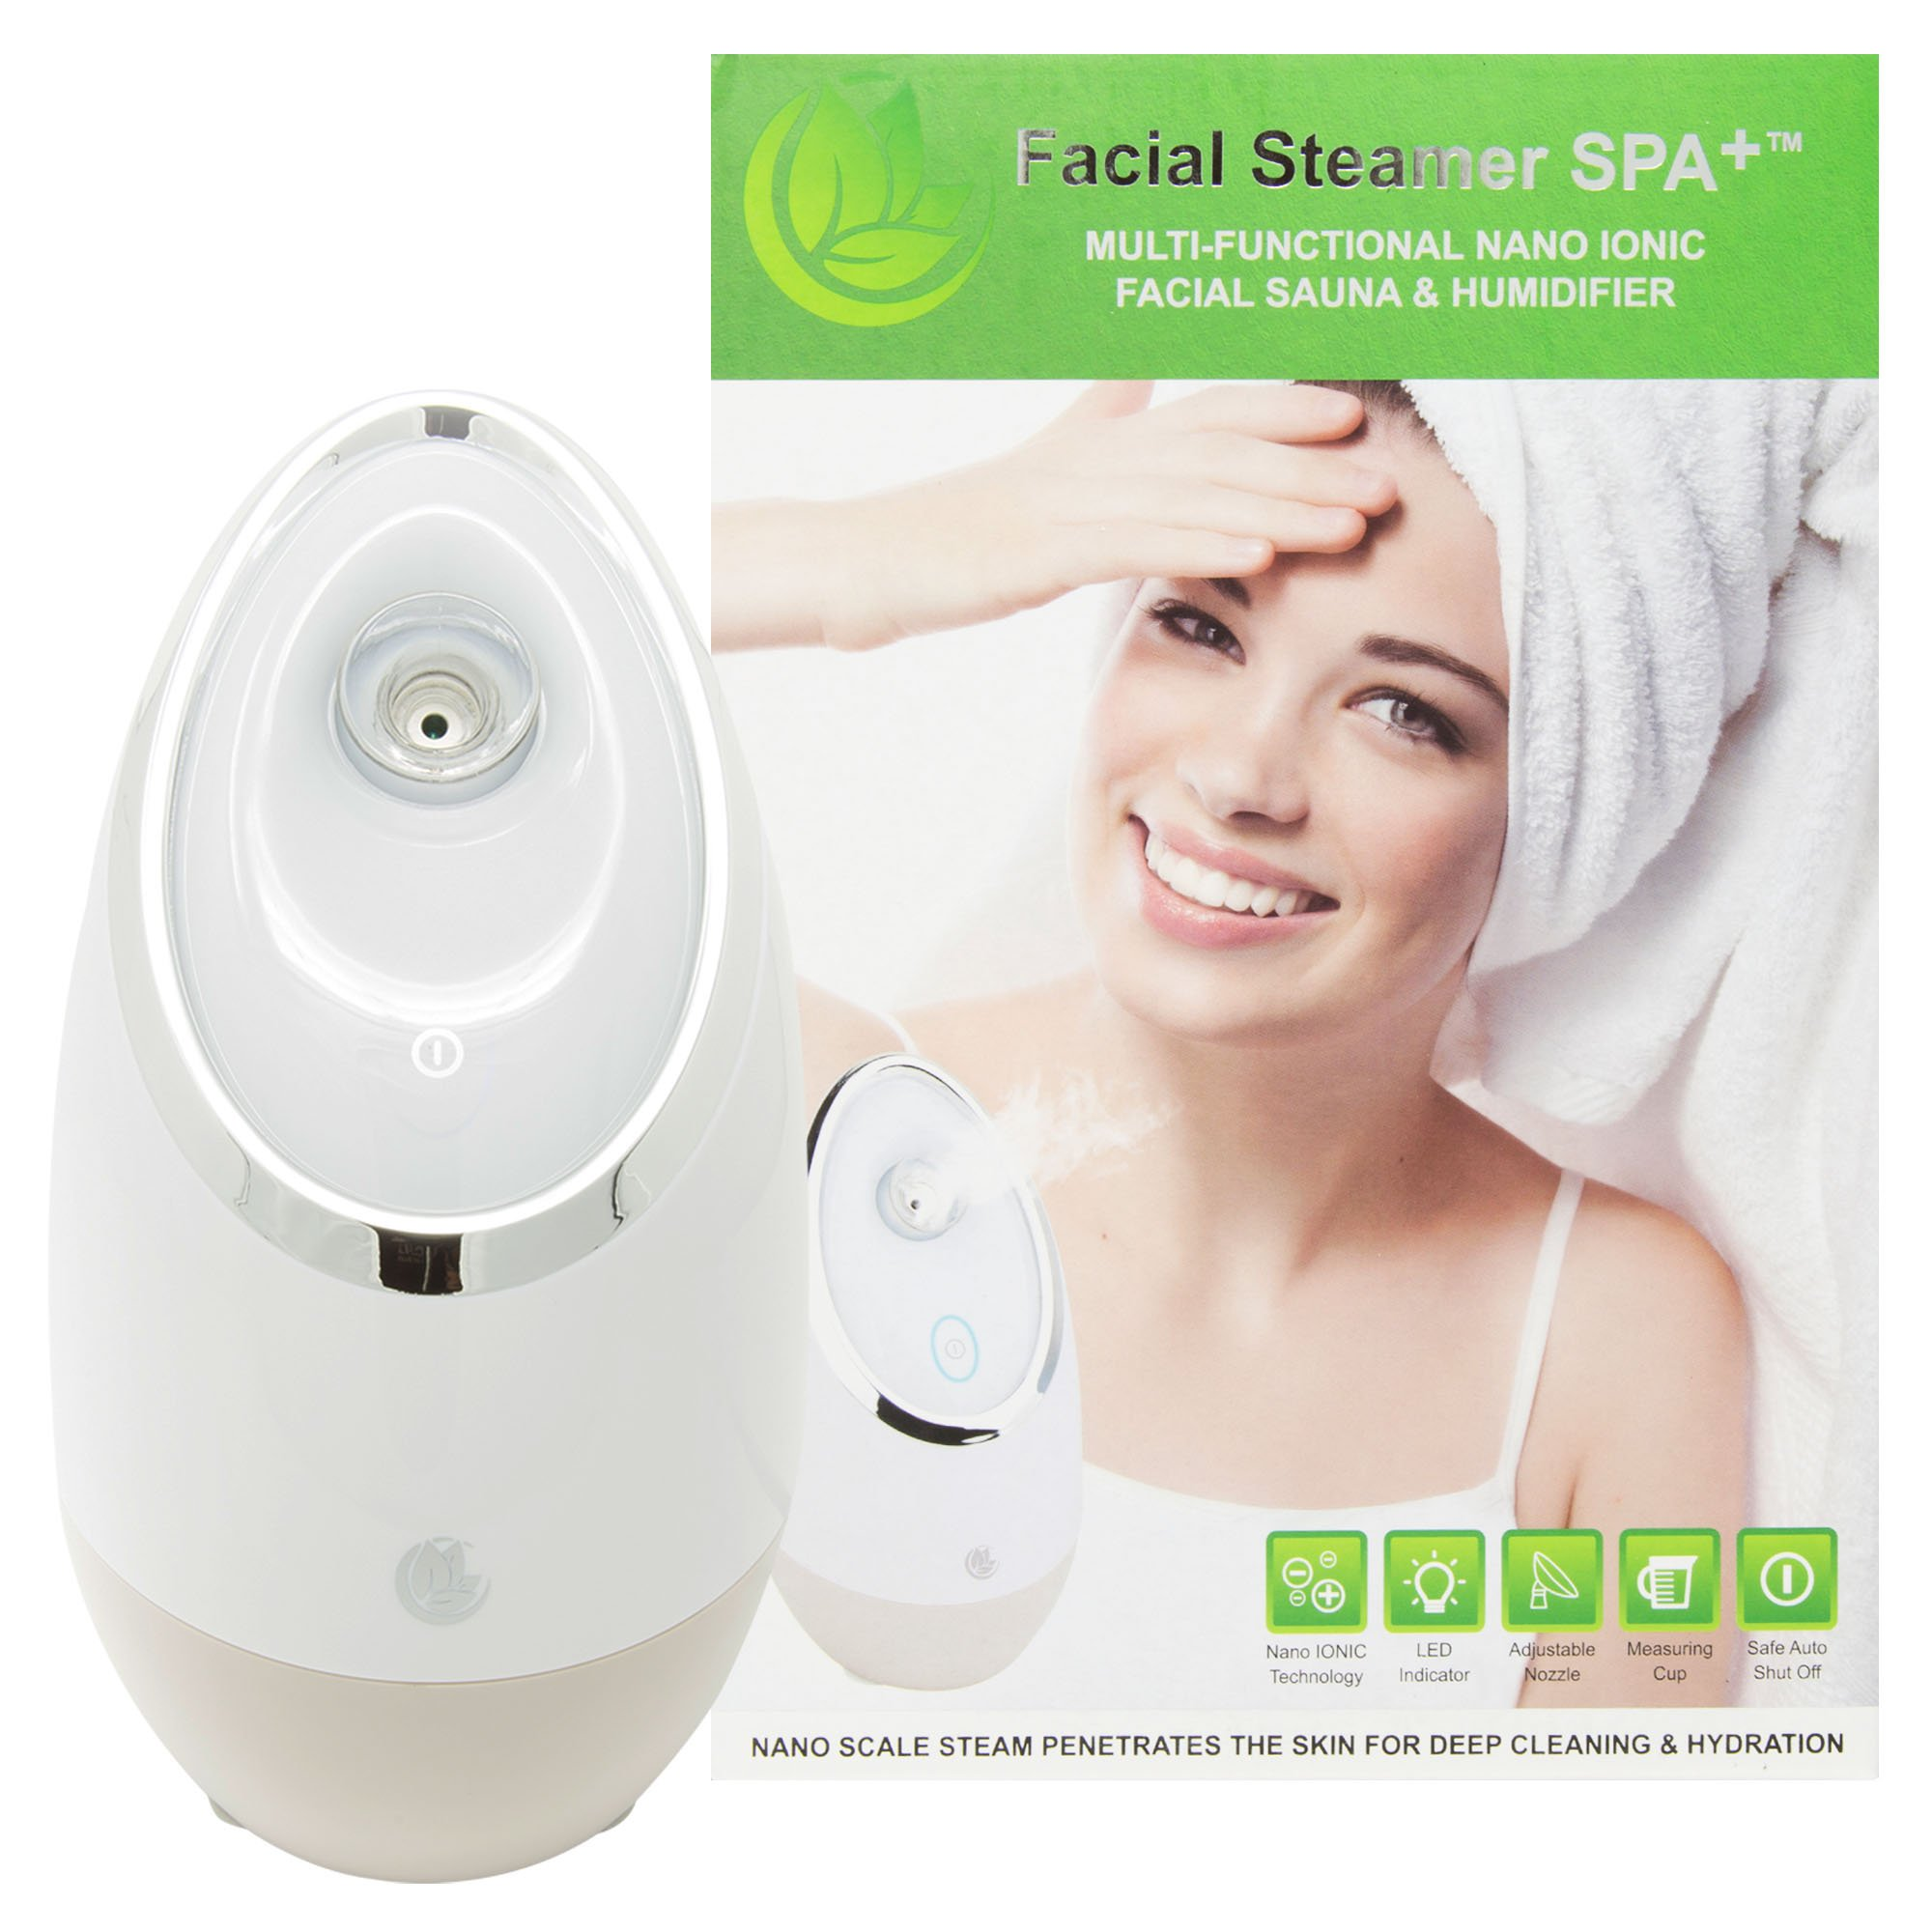 Facial Steamer SPA+ by Nuvéderm BEST Nano Ionic, Warm Mist, Home Face Sauna & Portable Humidifier Machine. Perfect for Deep Cleaning Pores, Blackhead Removal, Acne Treatment, and Daily Skin Hydration